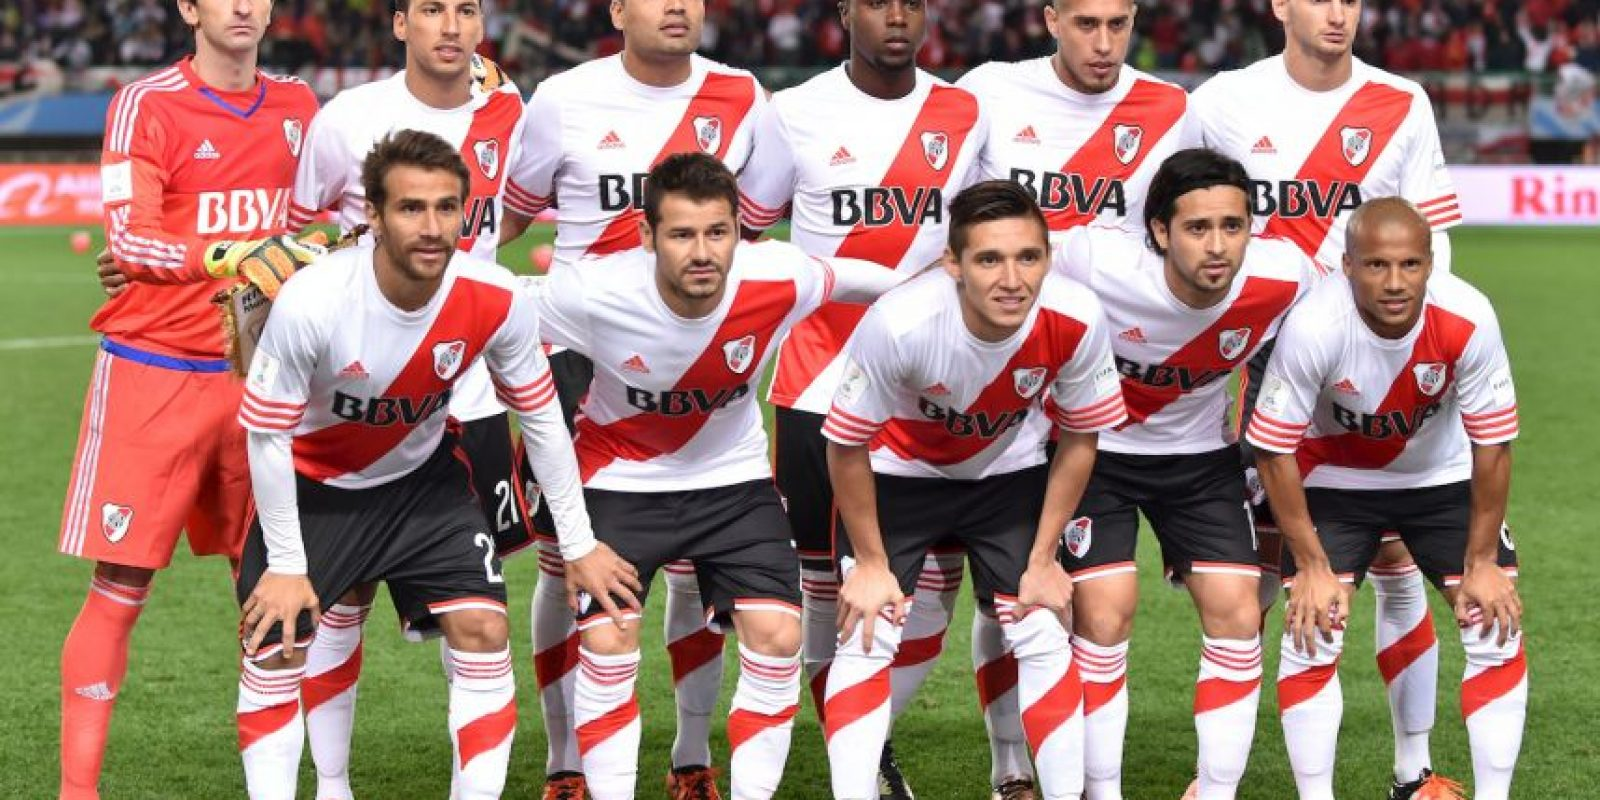 River Plate Foto: Getty Images